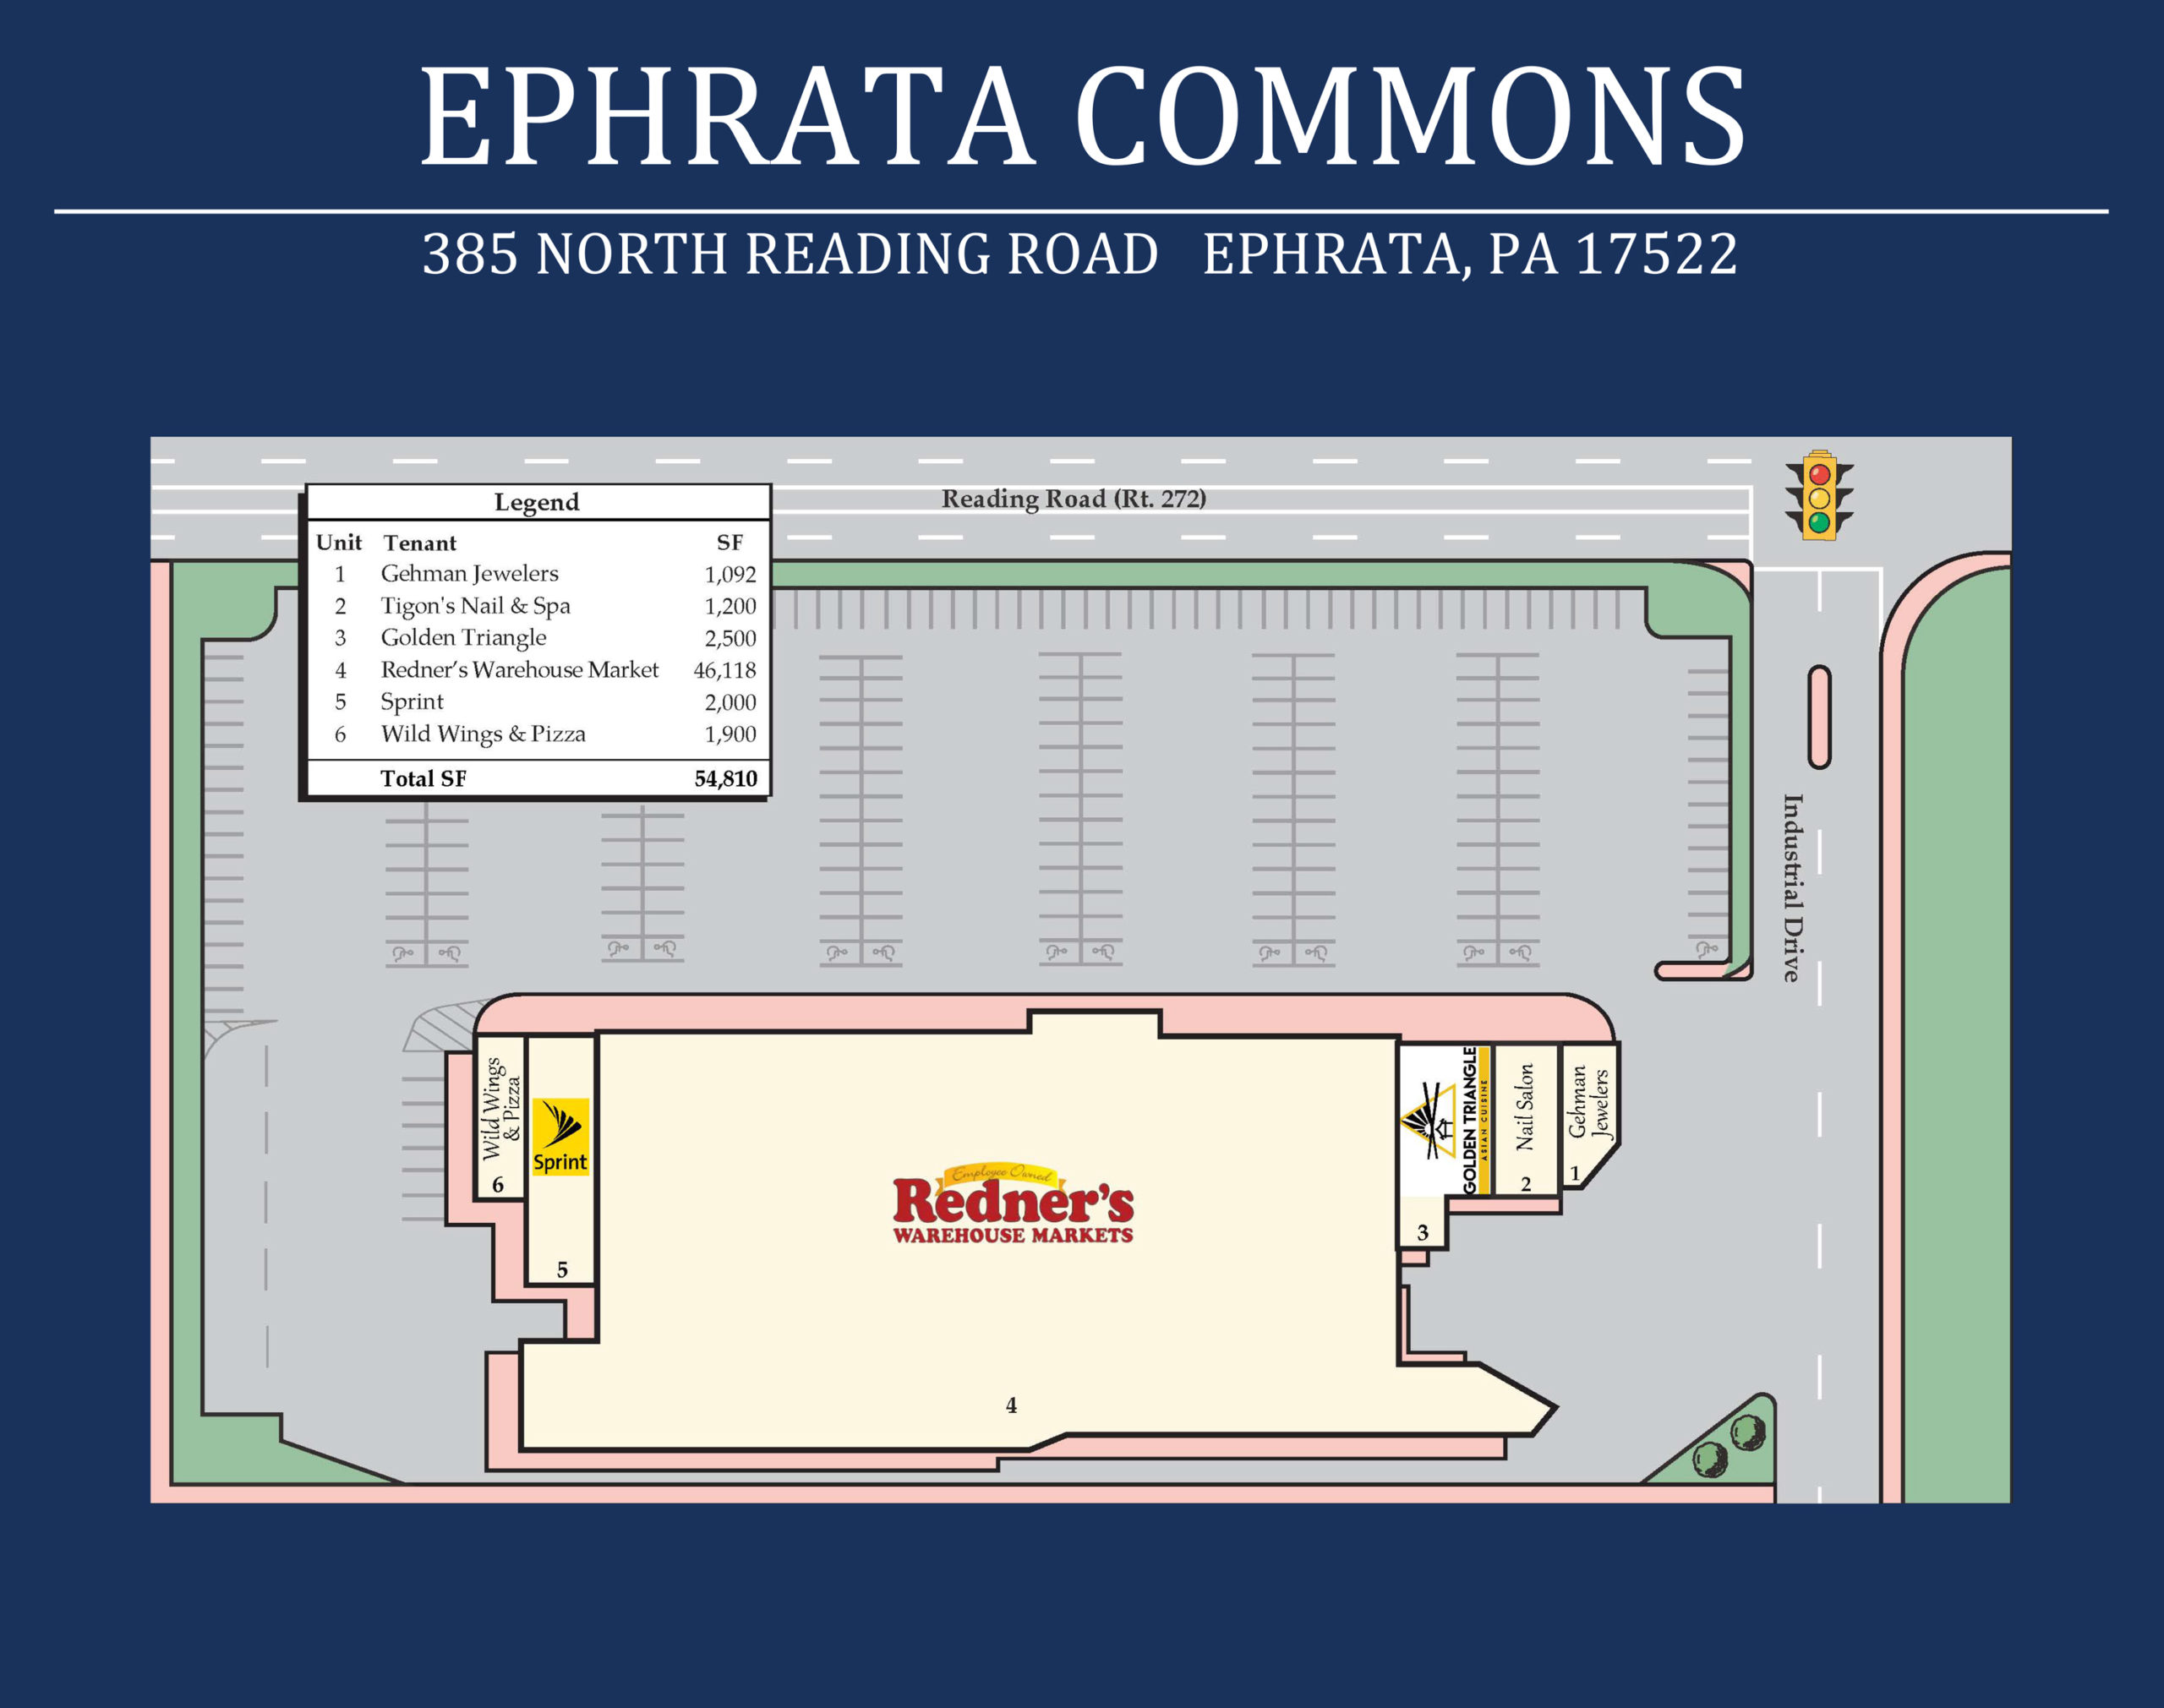 Ephrata Commons